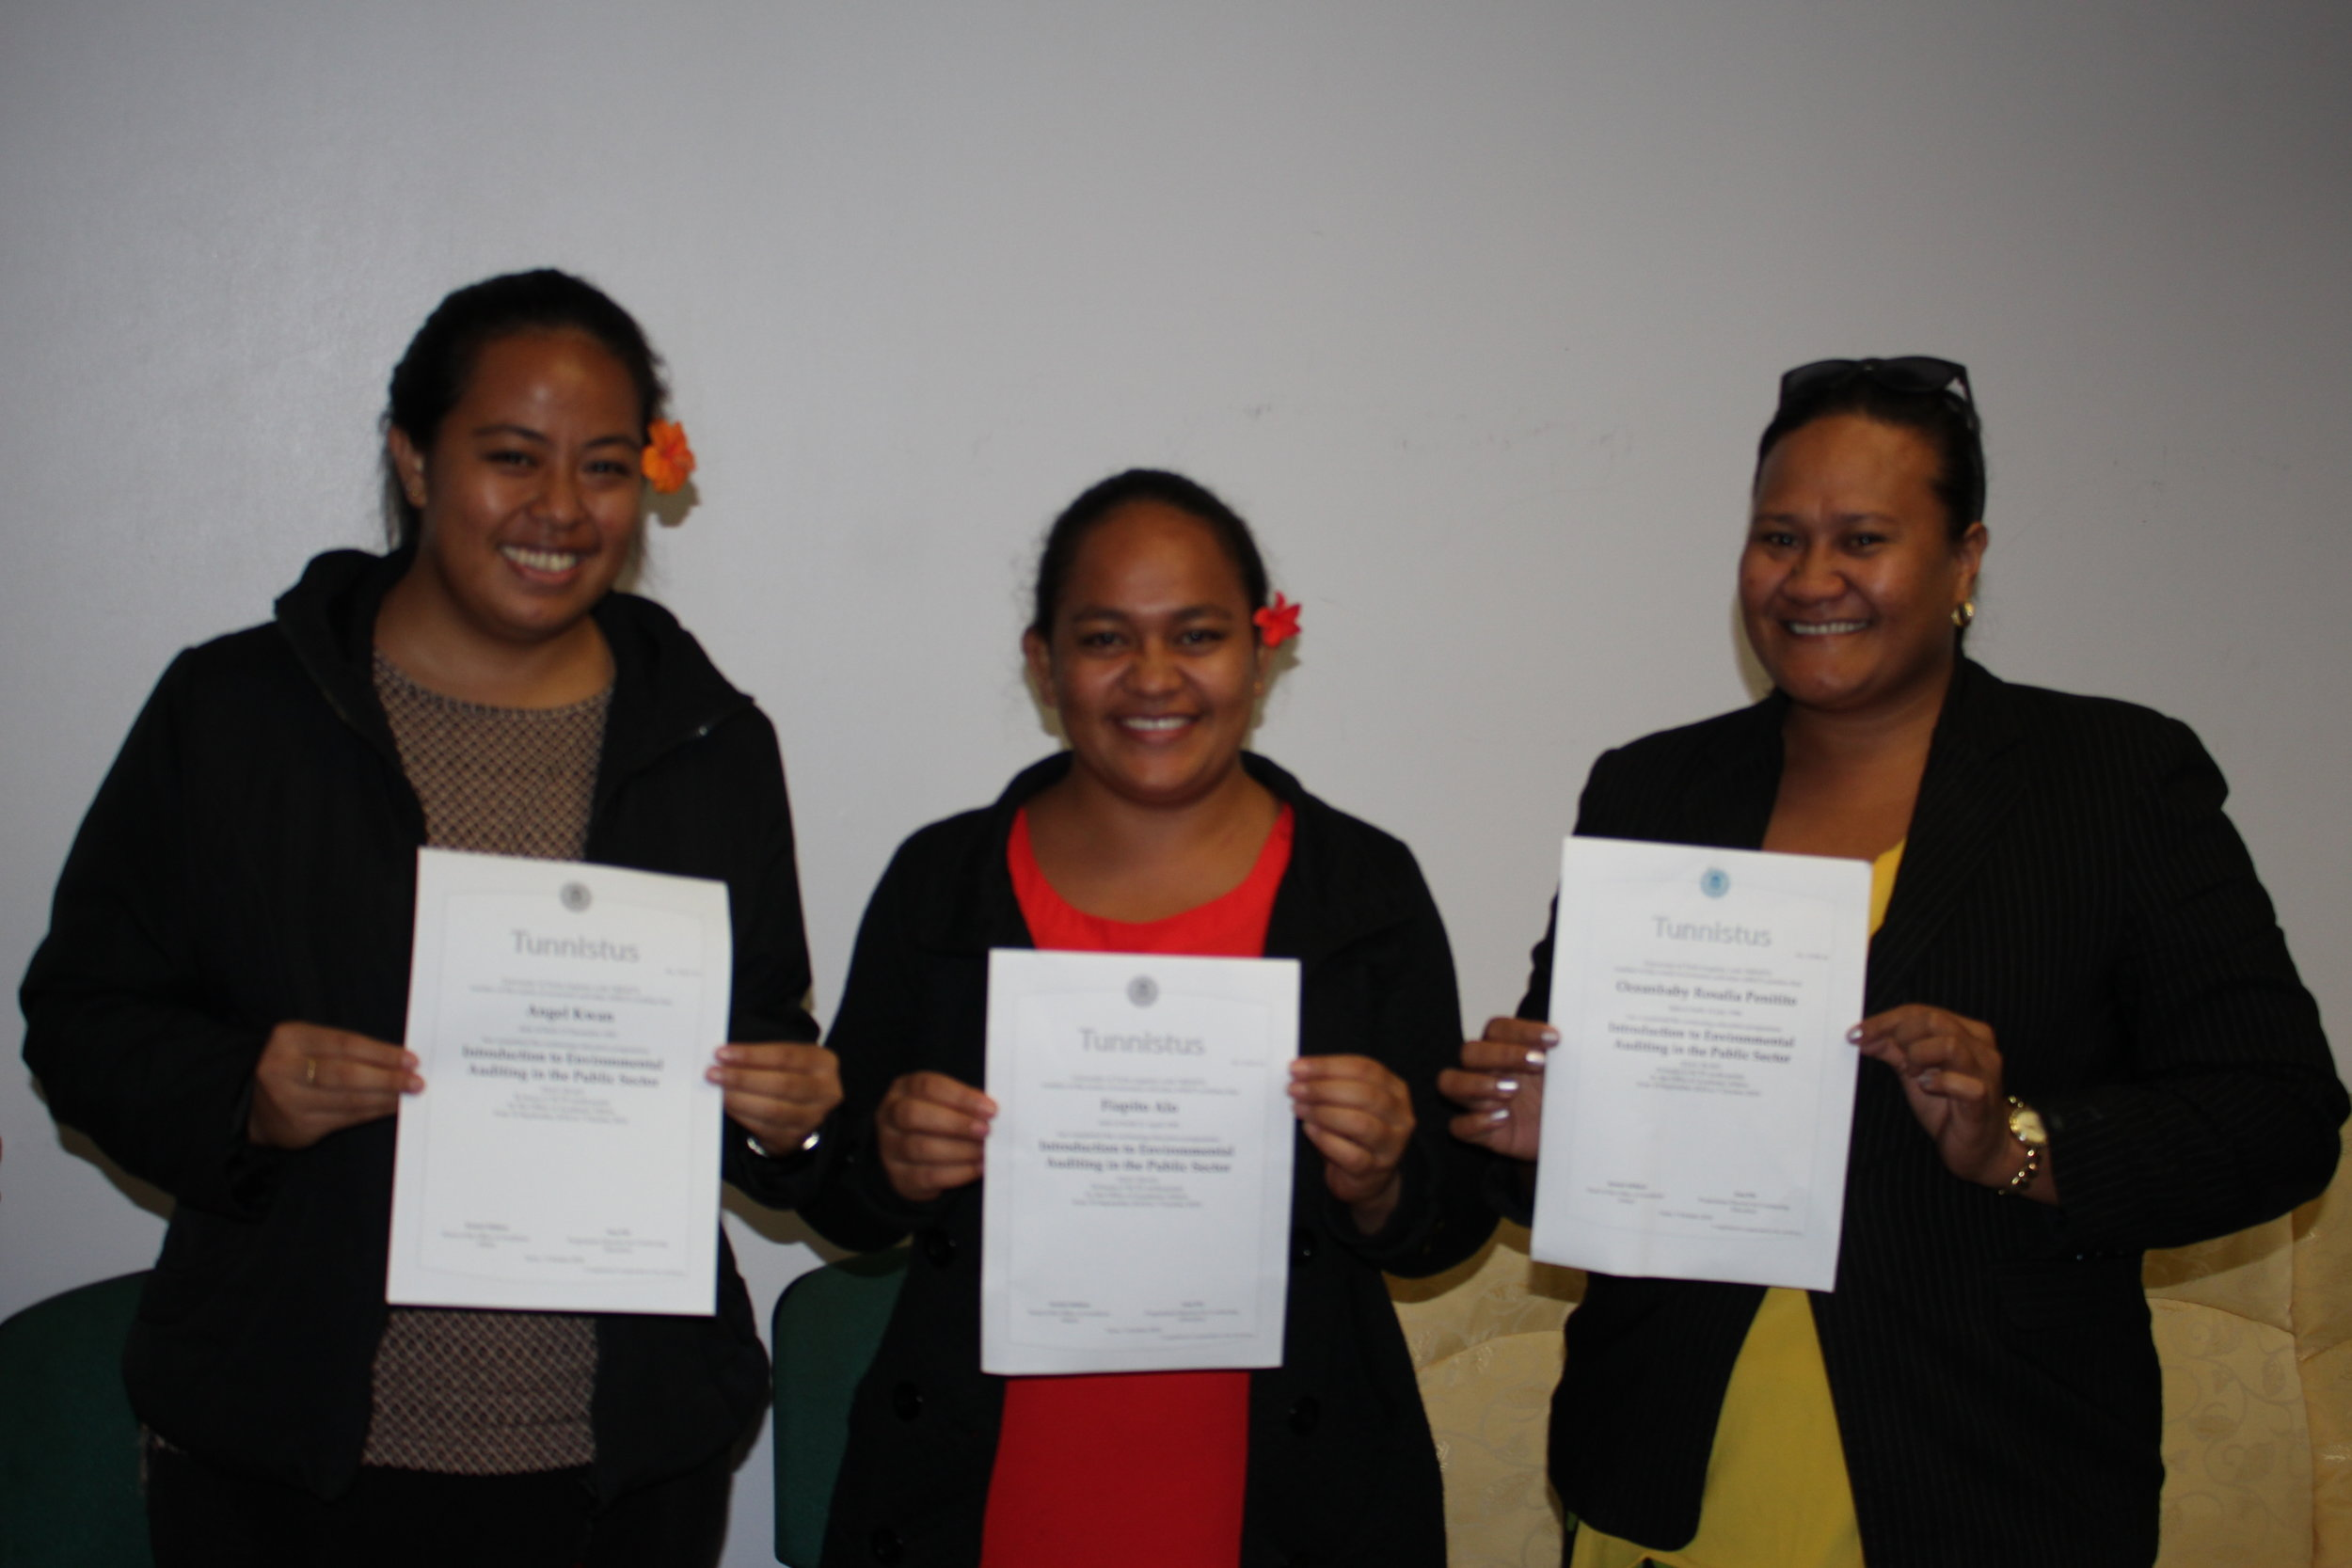 SAI Samoa's achievements in the MOOC